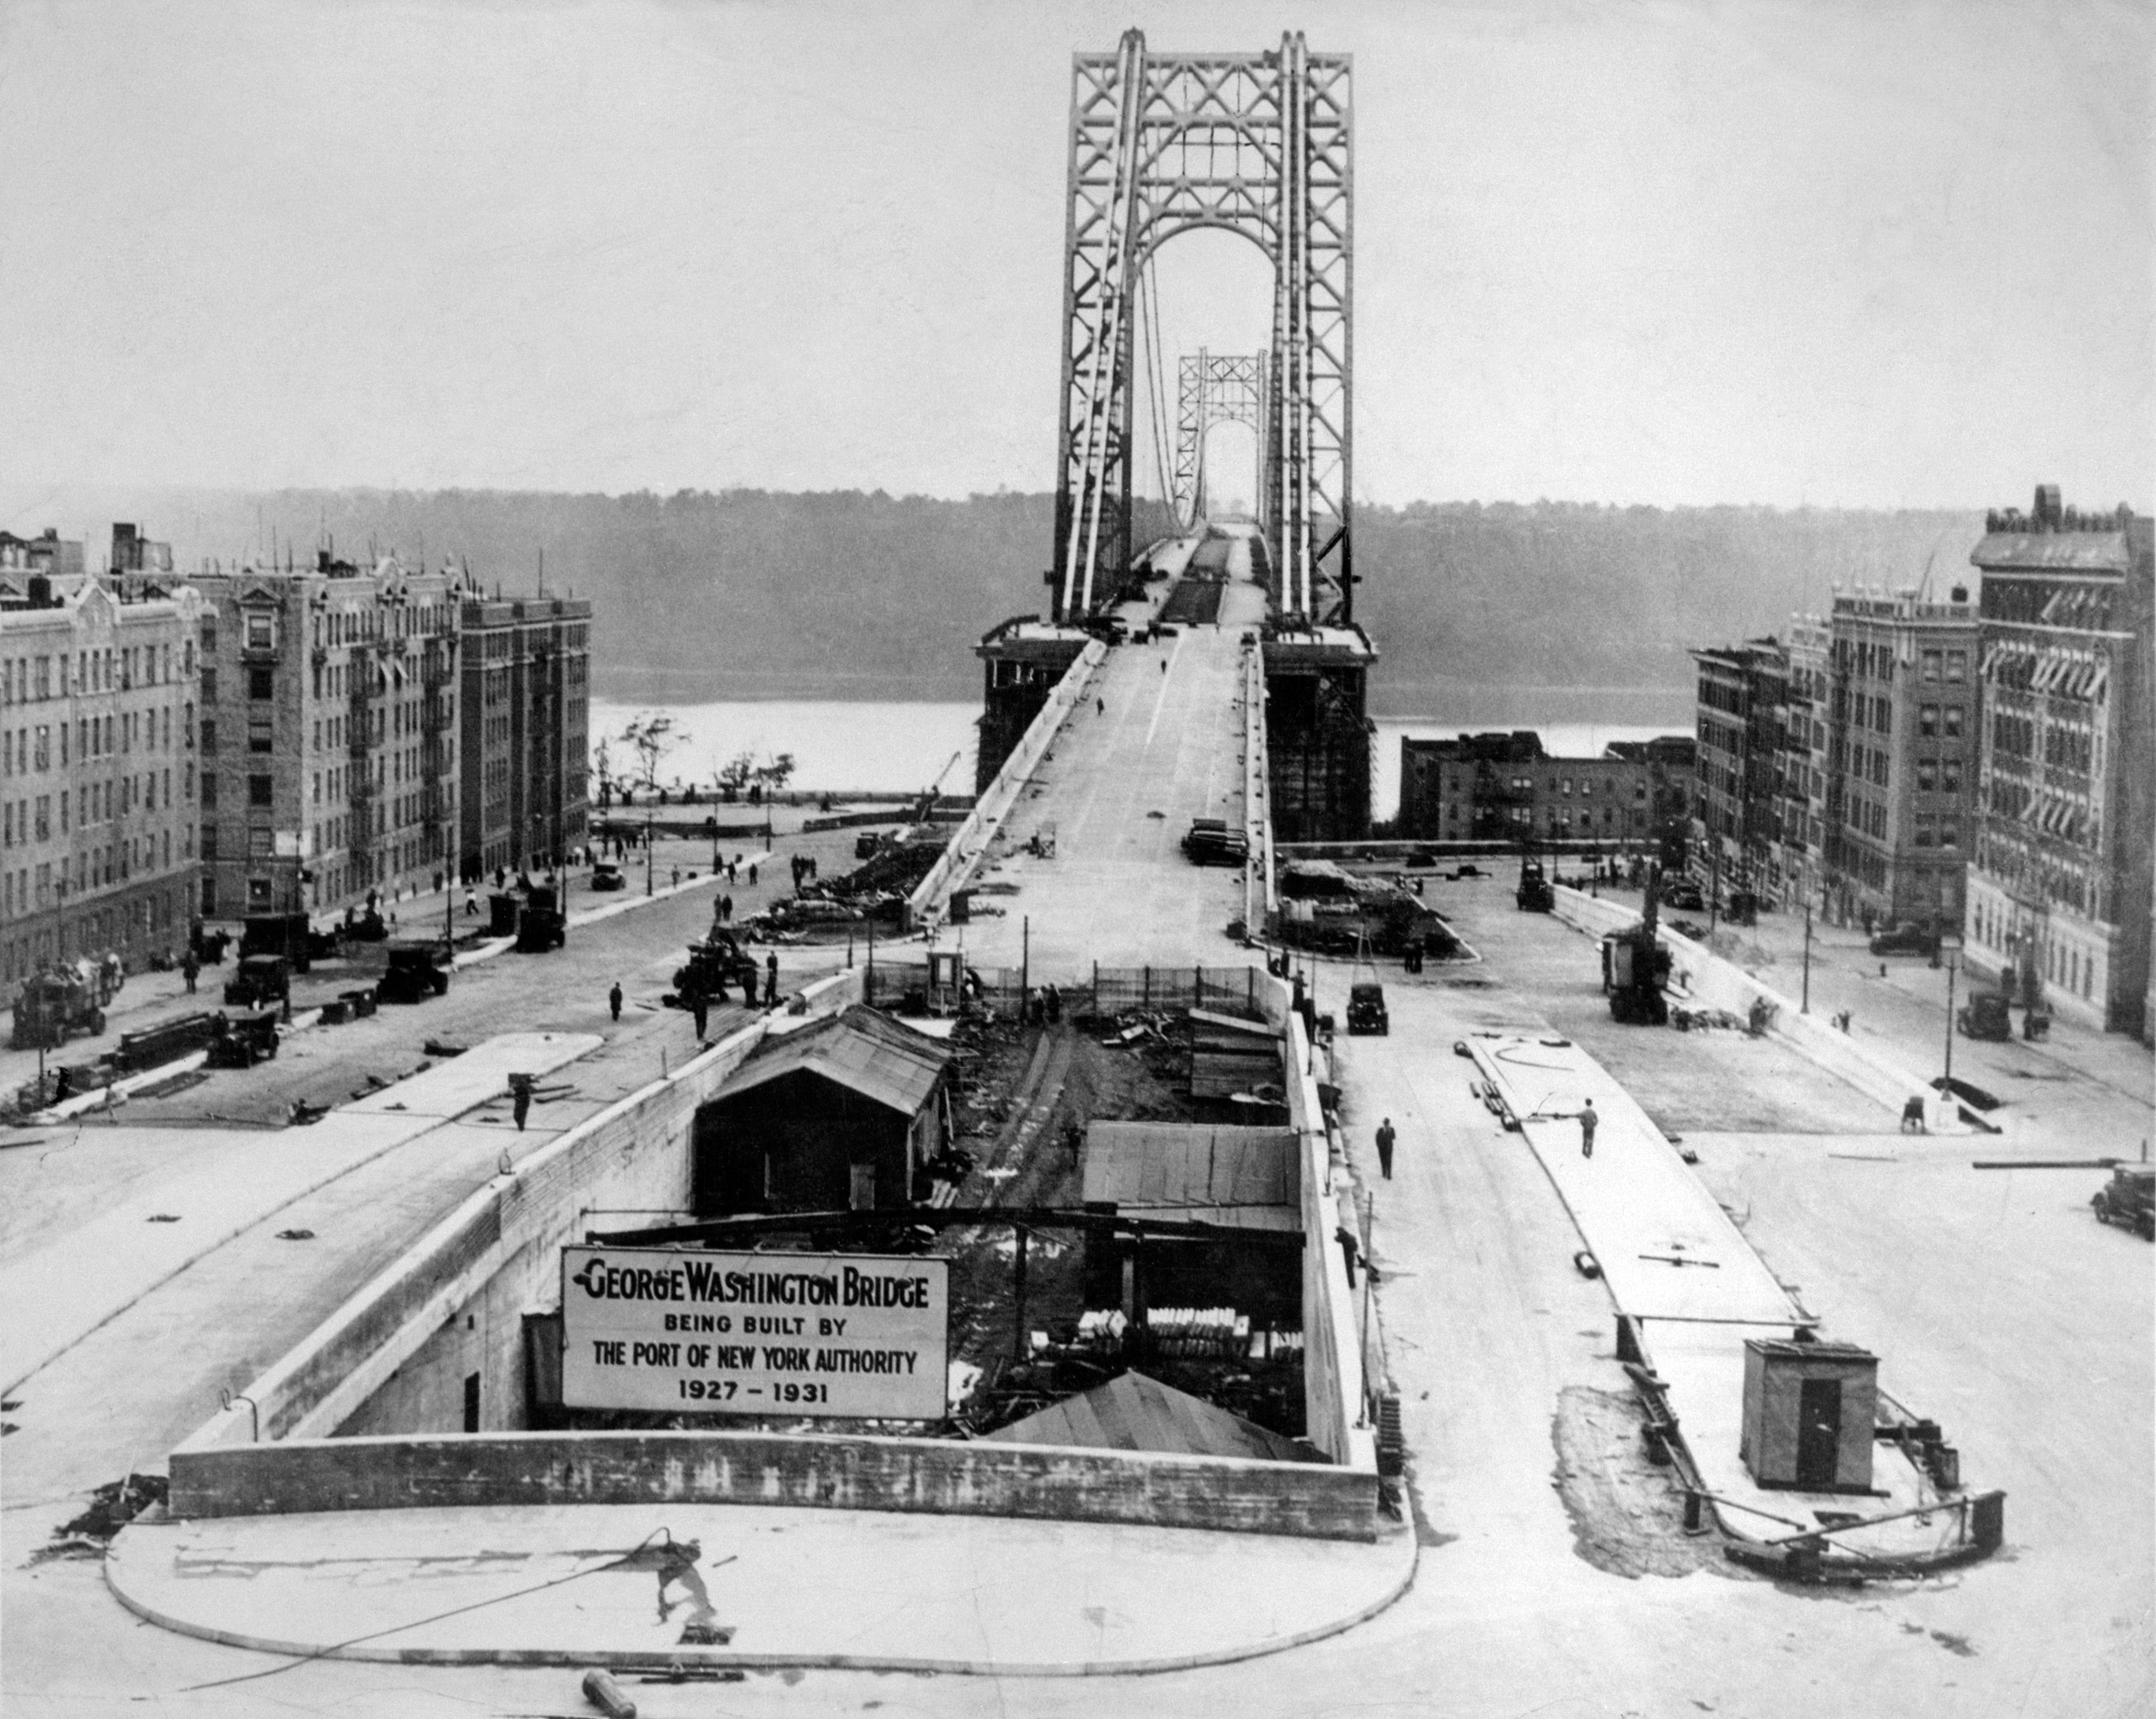 A view of the structure from the New York end, showing the underground approach as well as the one on the surface and the exit. That's New Jersey over in the distance. Oct. 19, 1931.